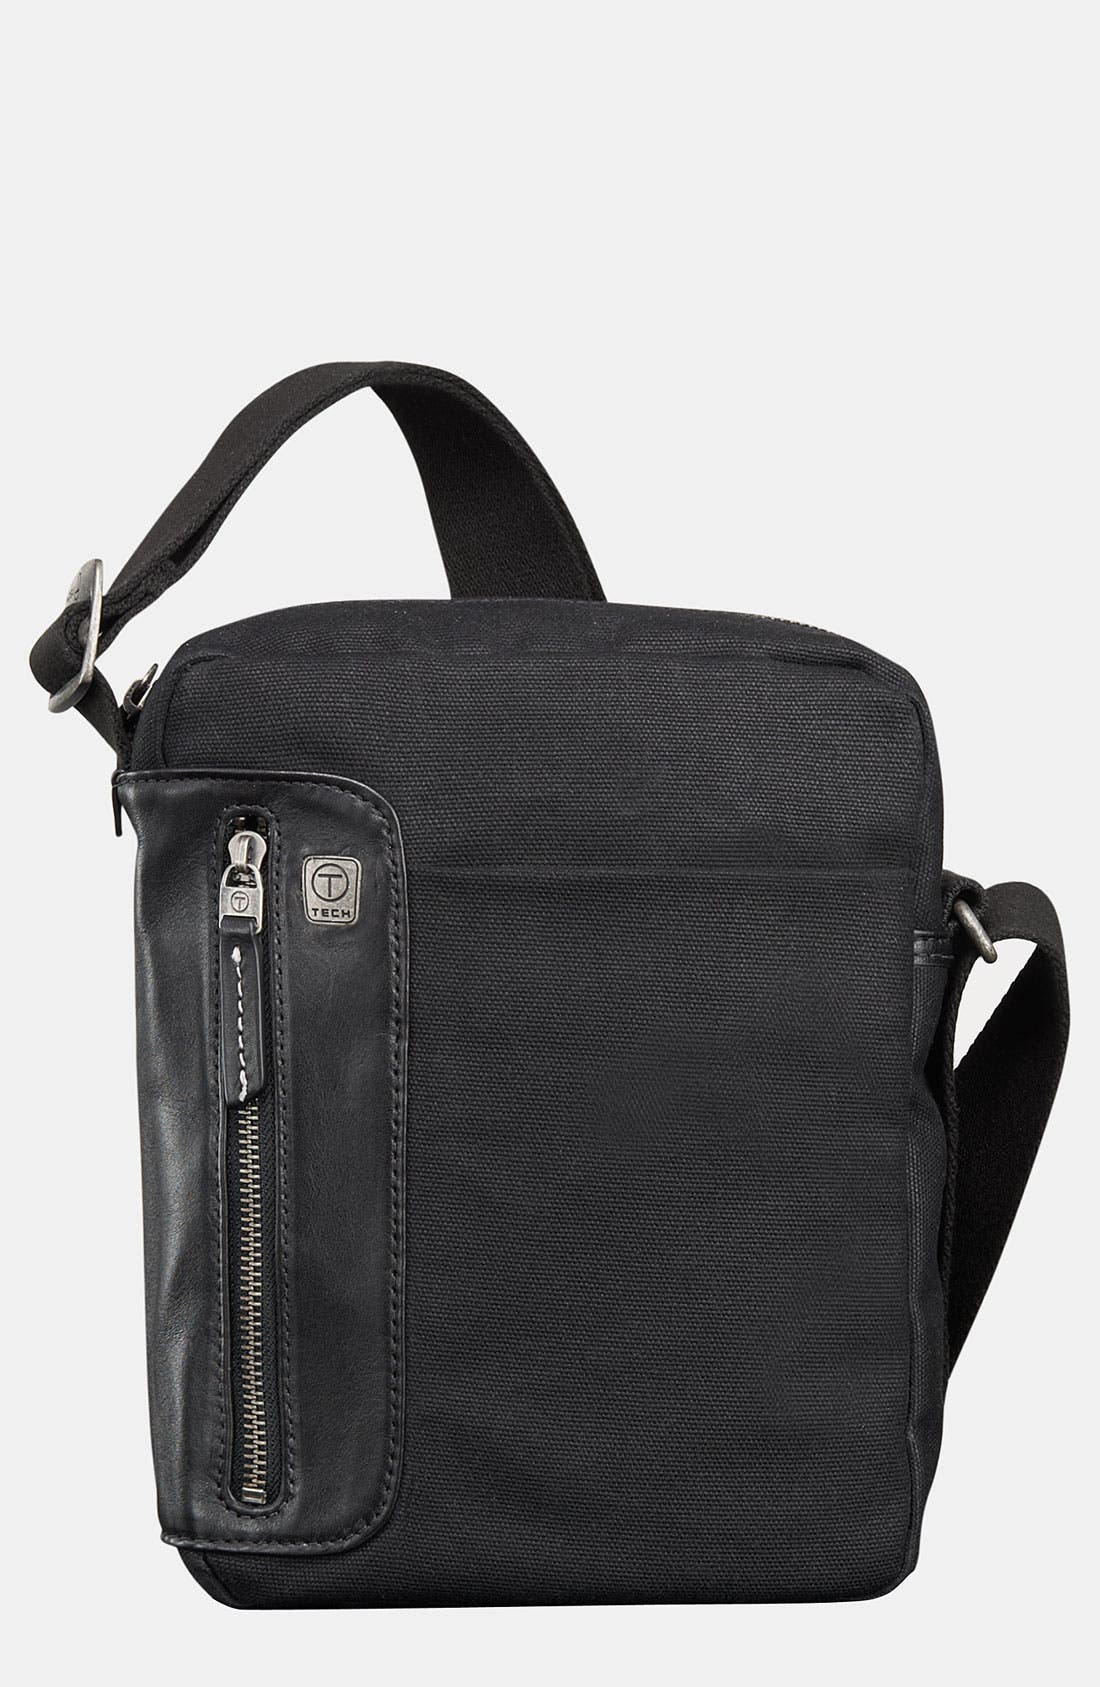 Main Image - Tumi 'Small T-Tech Forge - Pittsburgh' Crossbody Bag